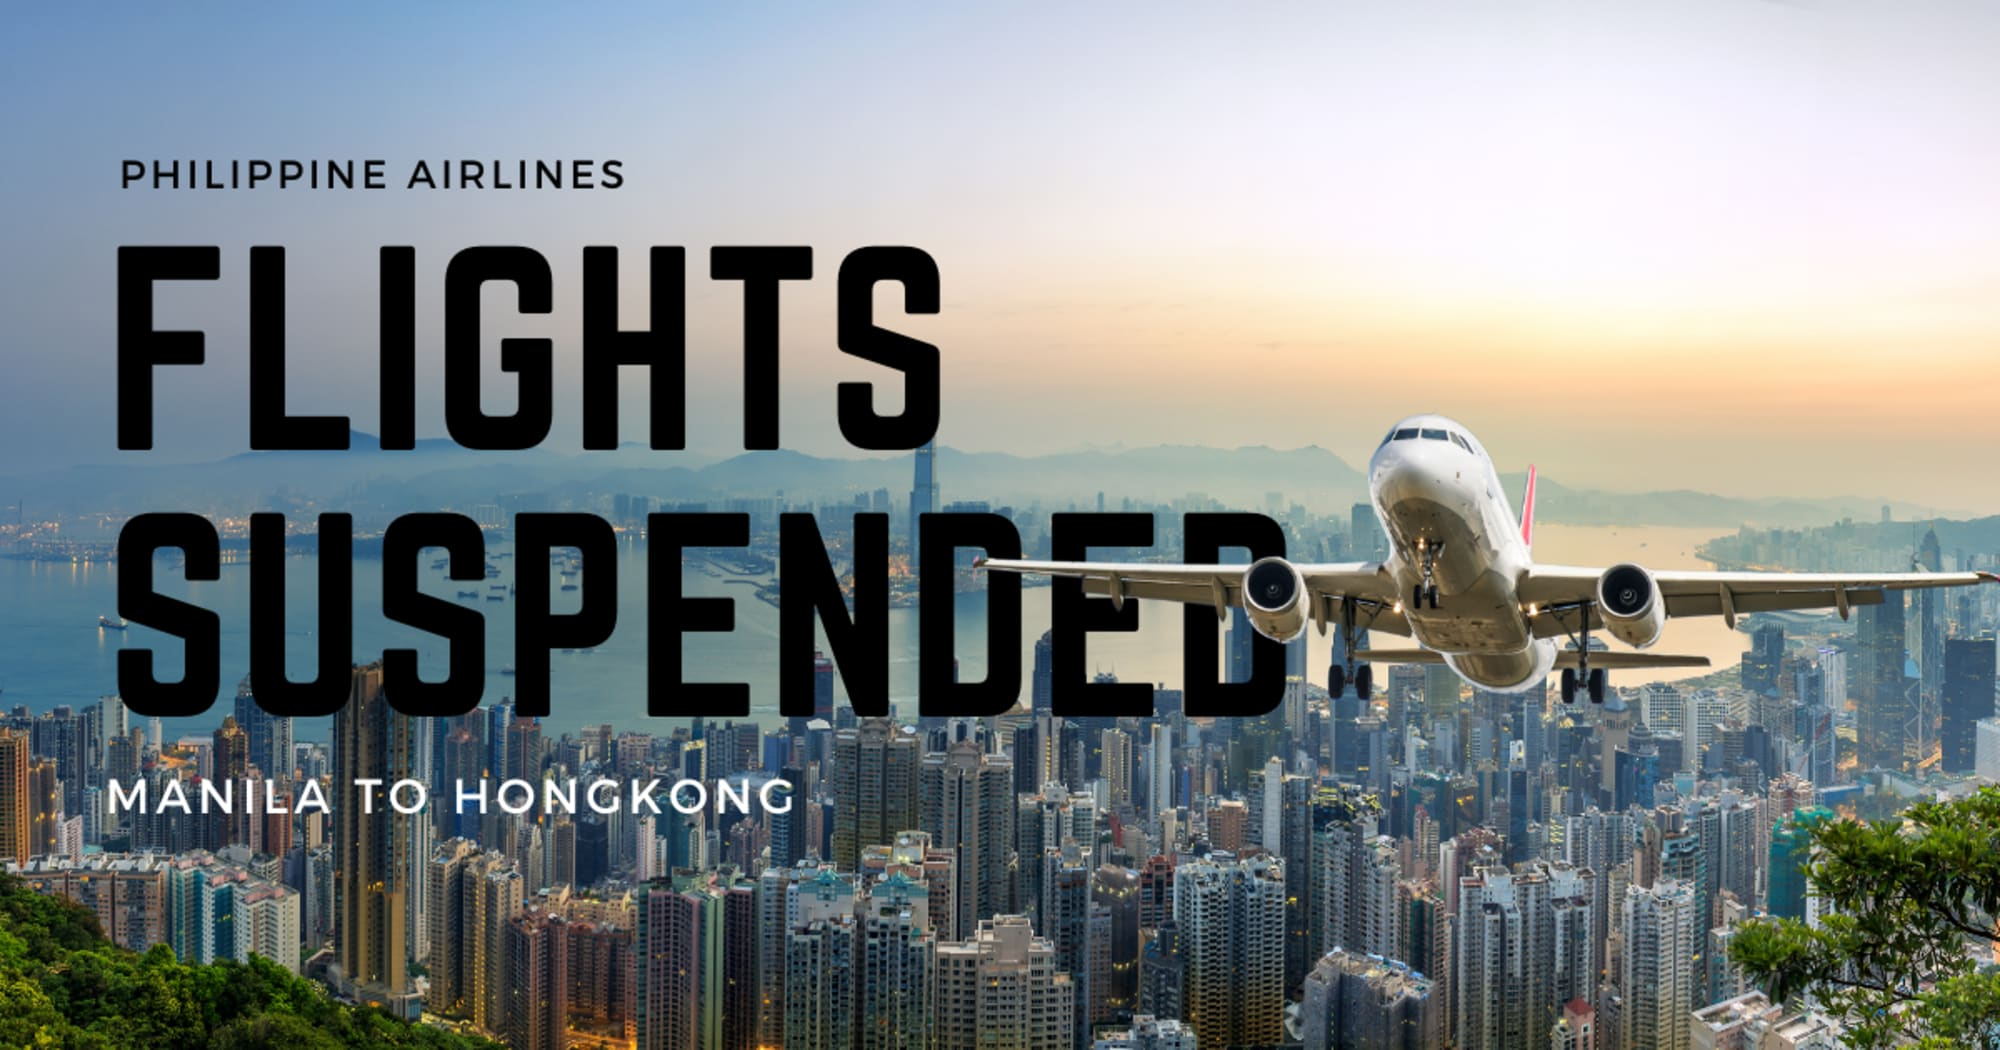 PAL Flights to Hong Kong are suspended for two weeks